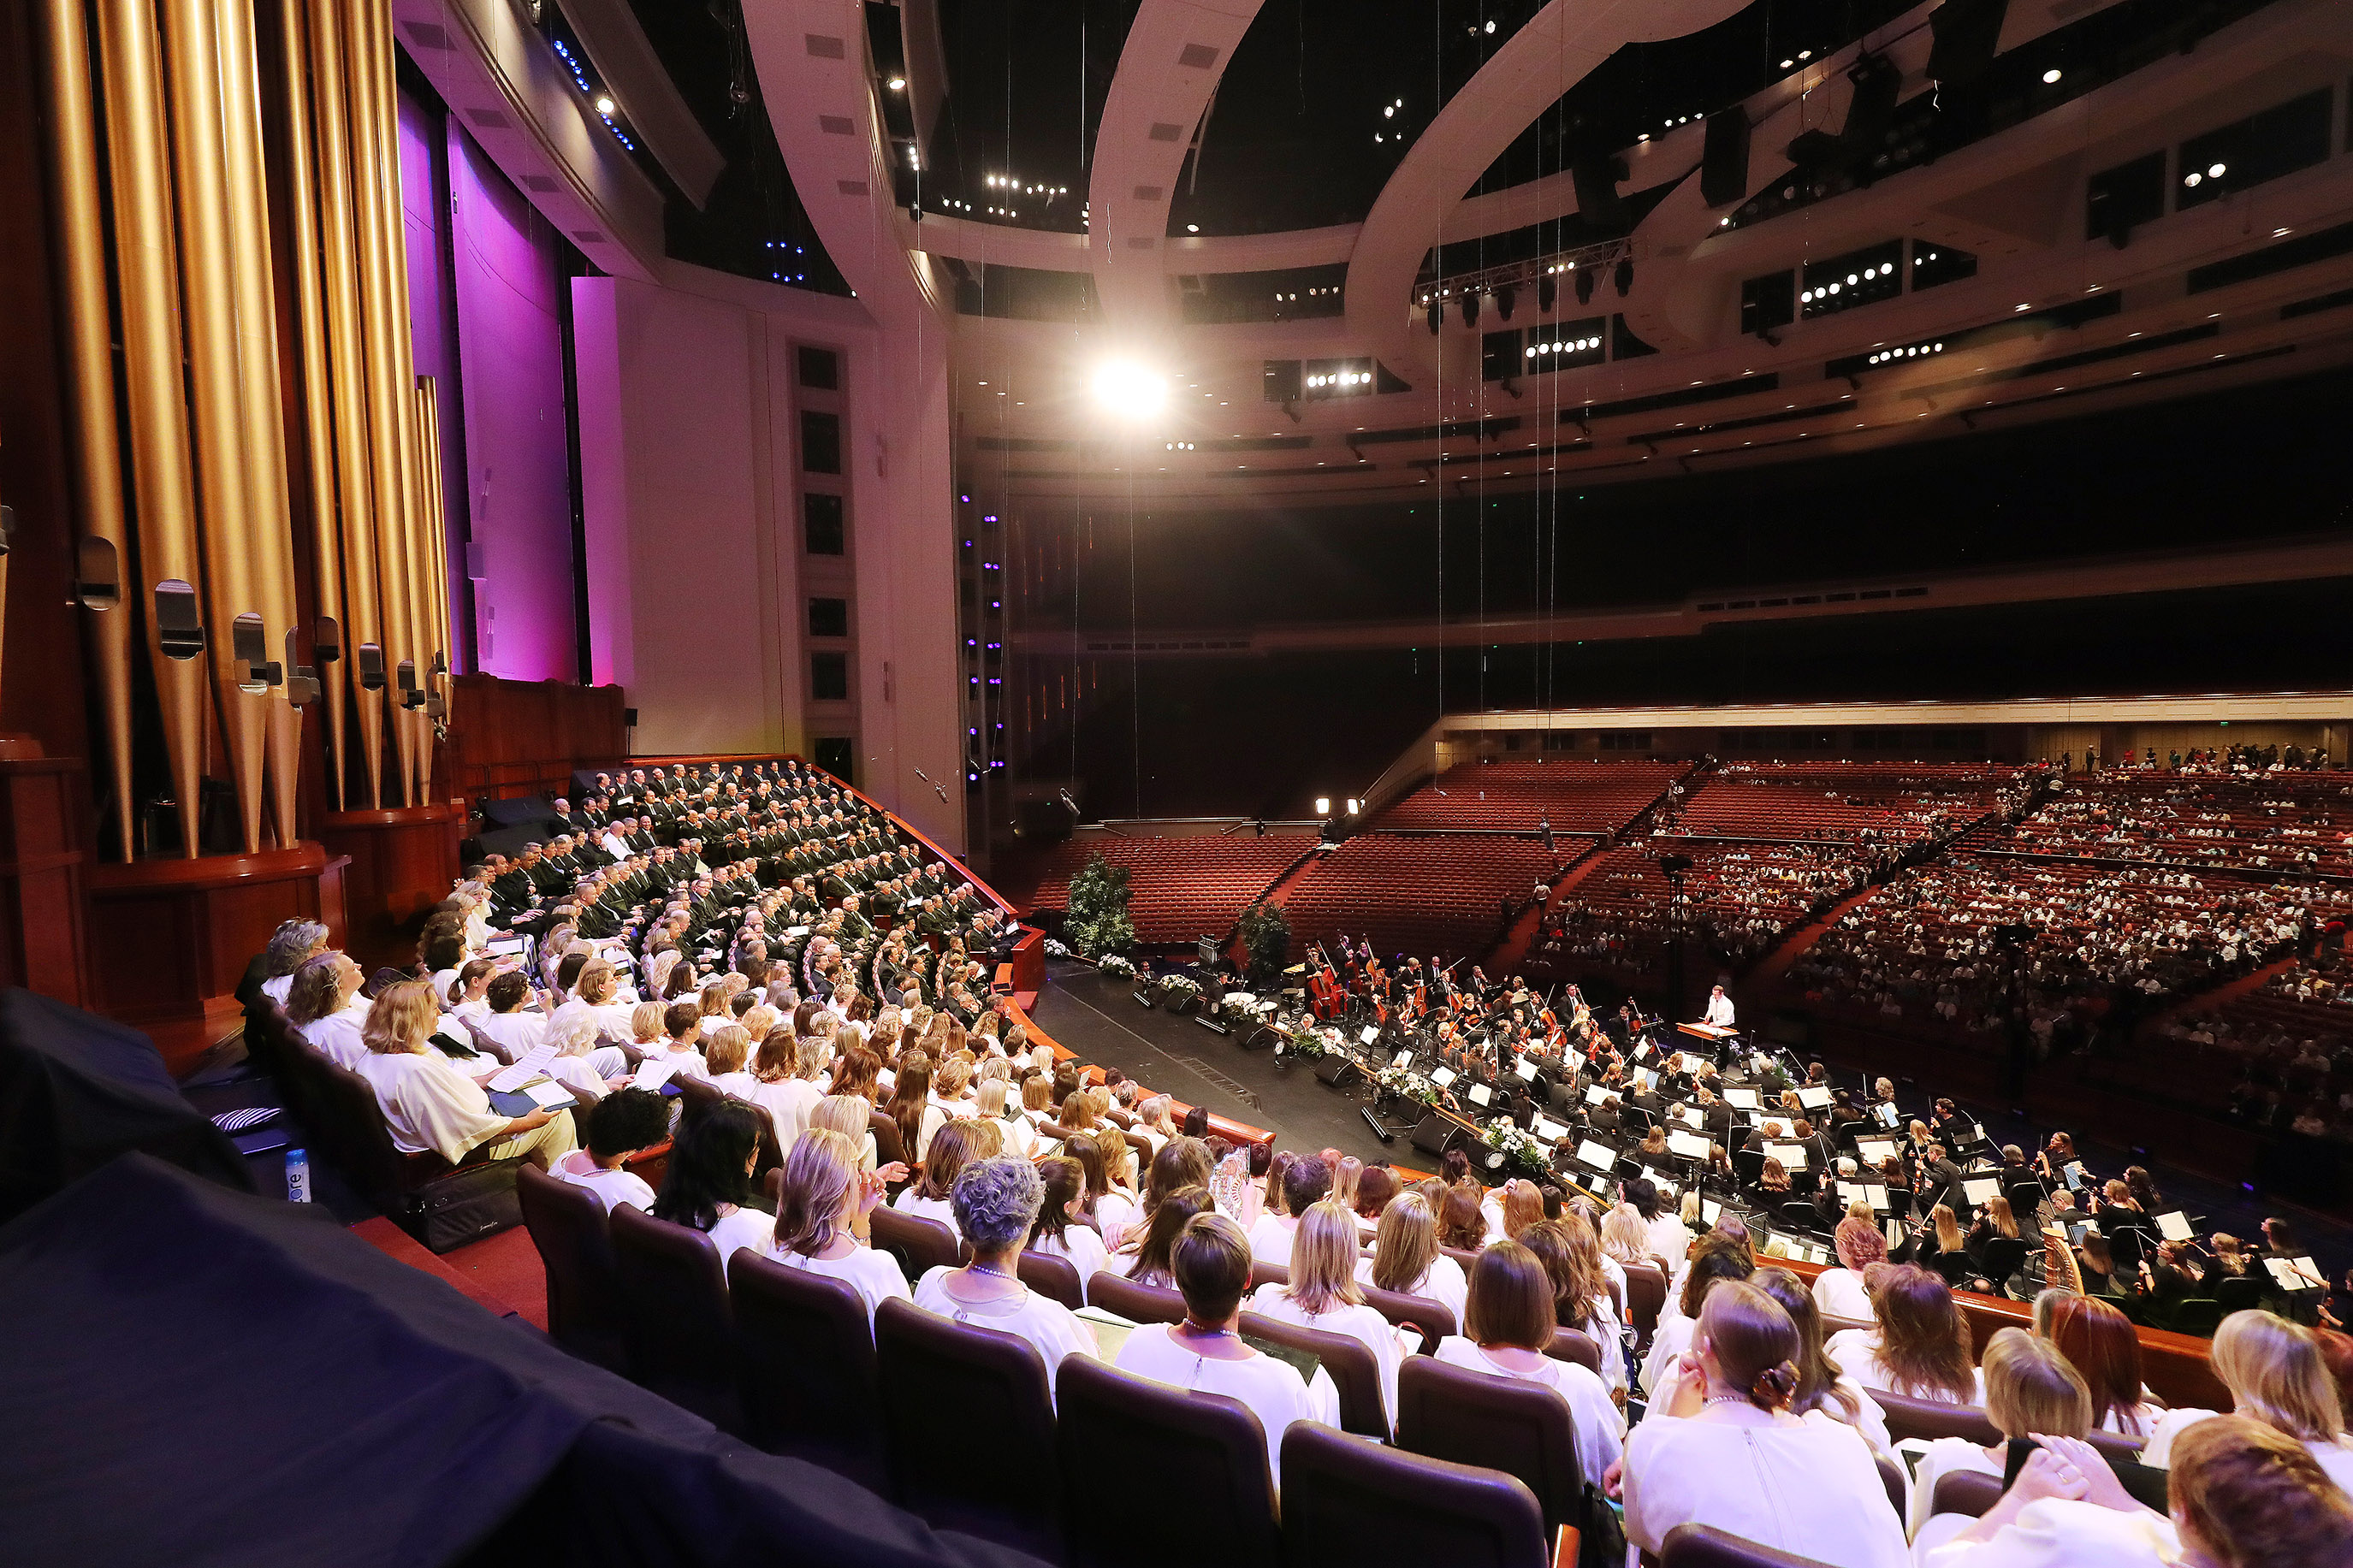 """The Tabernacle Choir at Temple Square rehearses for """"Music and the Spoken Word"""" in Salt Lake City on Sunday, July 14, 2019. The choir celebrated the 90th anniversary of """"Music and the Spoken Word"""" being on air."""